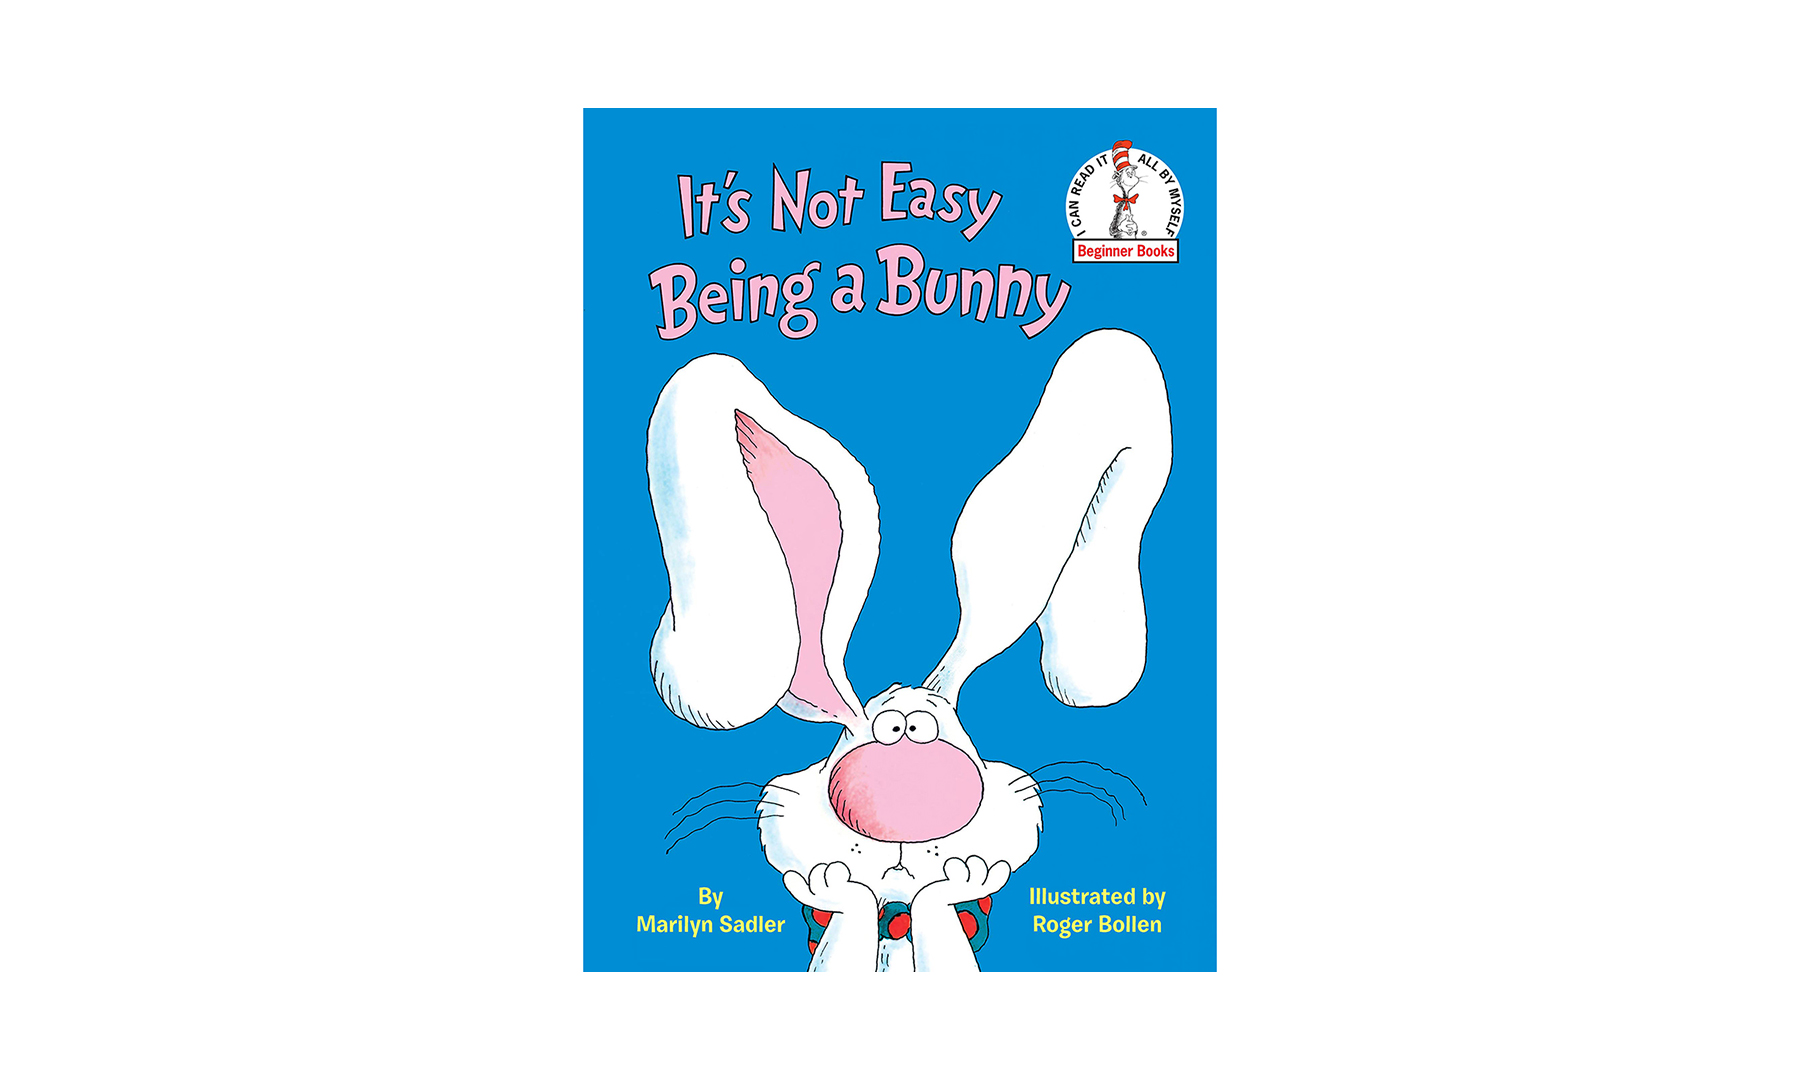 It's Not Easy Being a Bunny